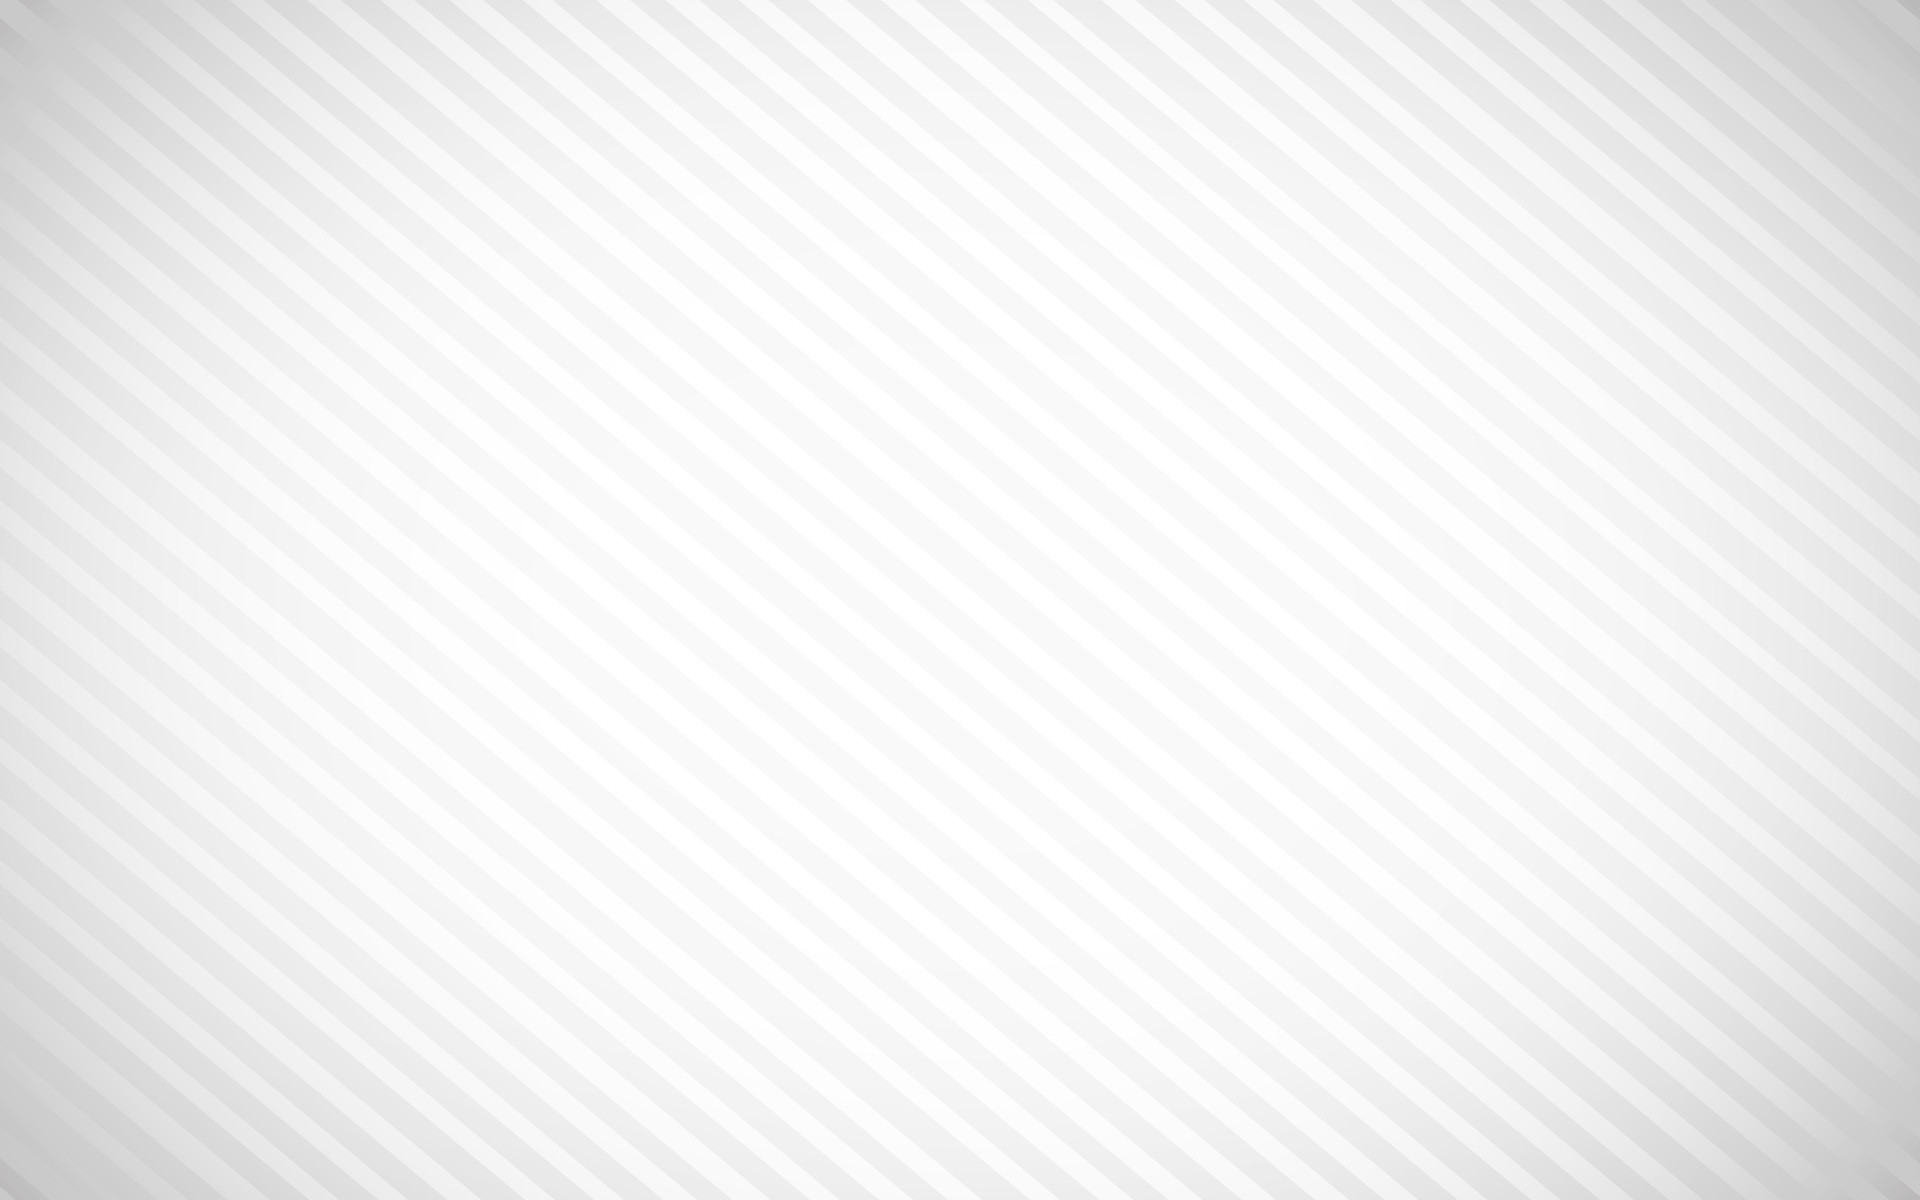 white background wallpaper hd 72 images